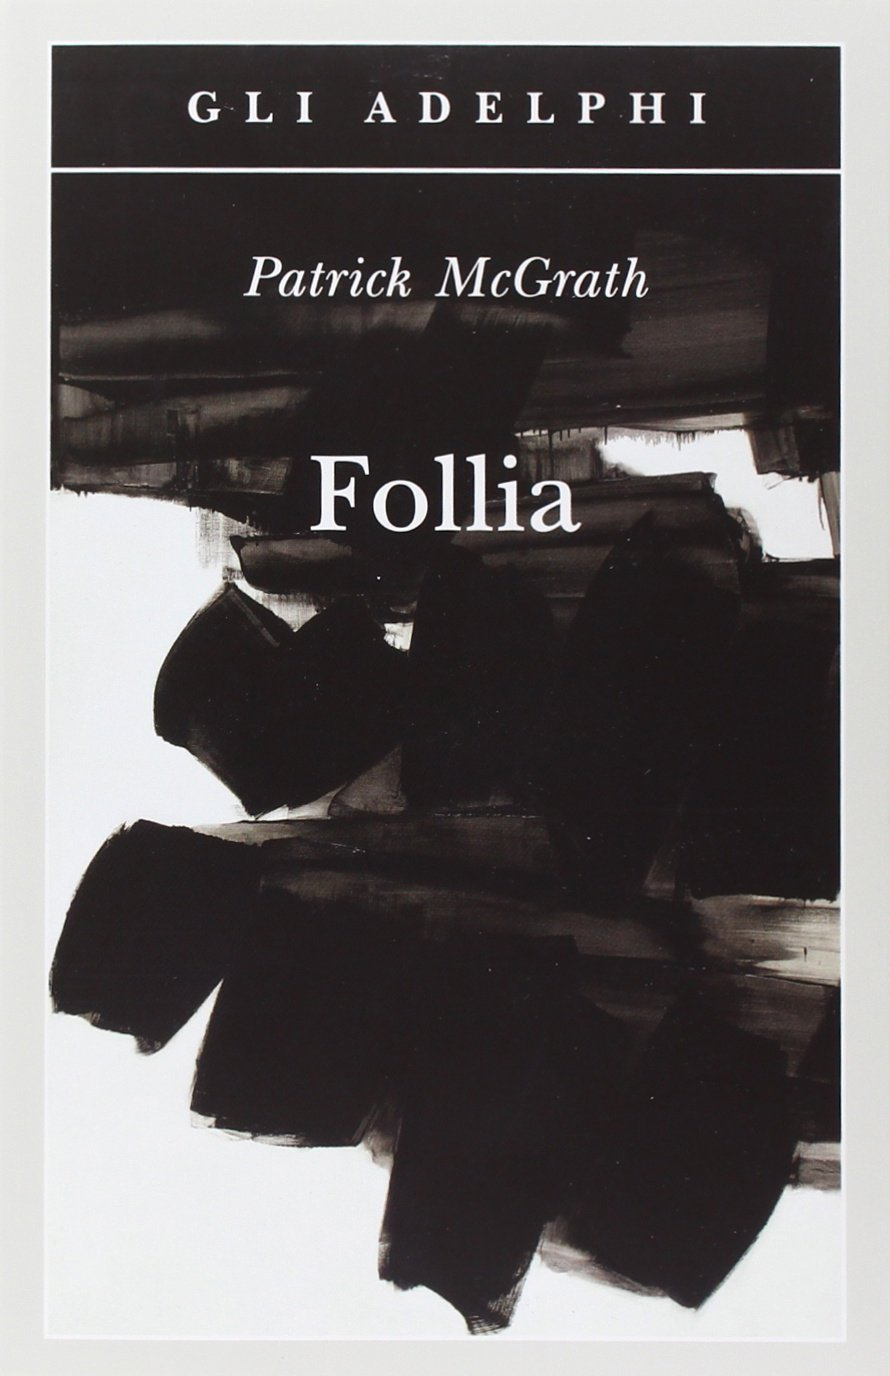 Patrick McGrath – Follia